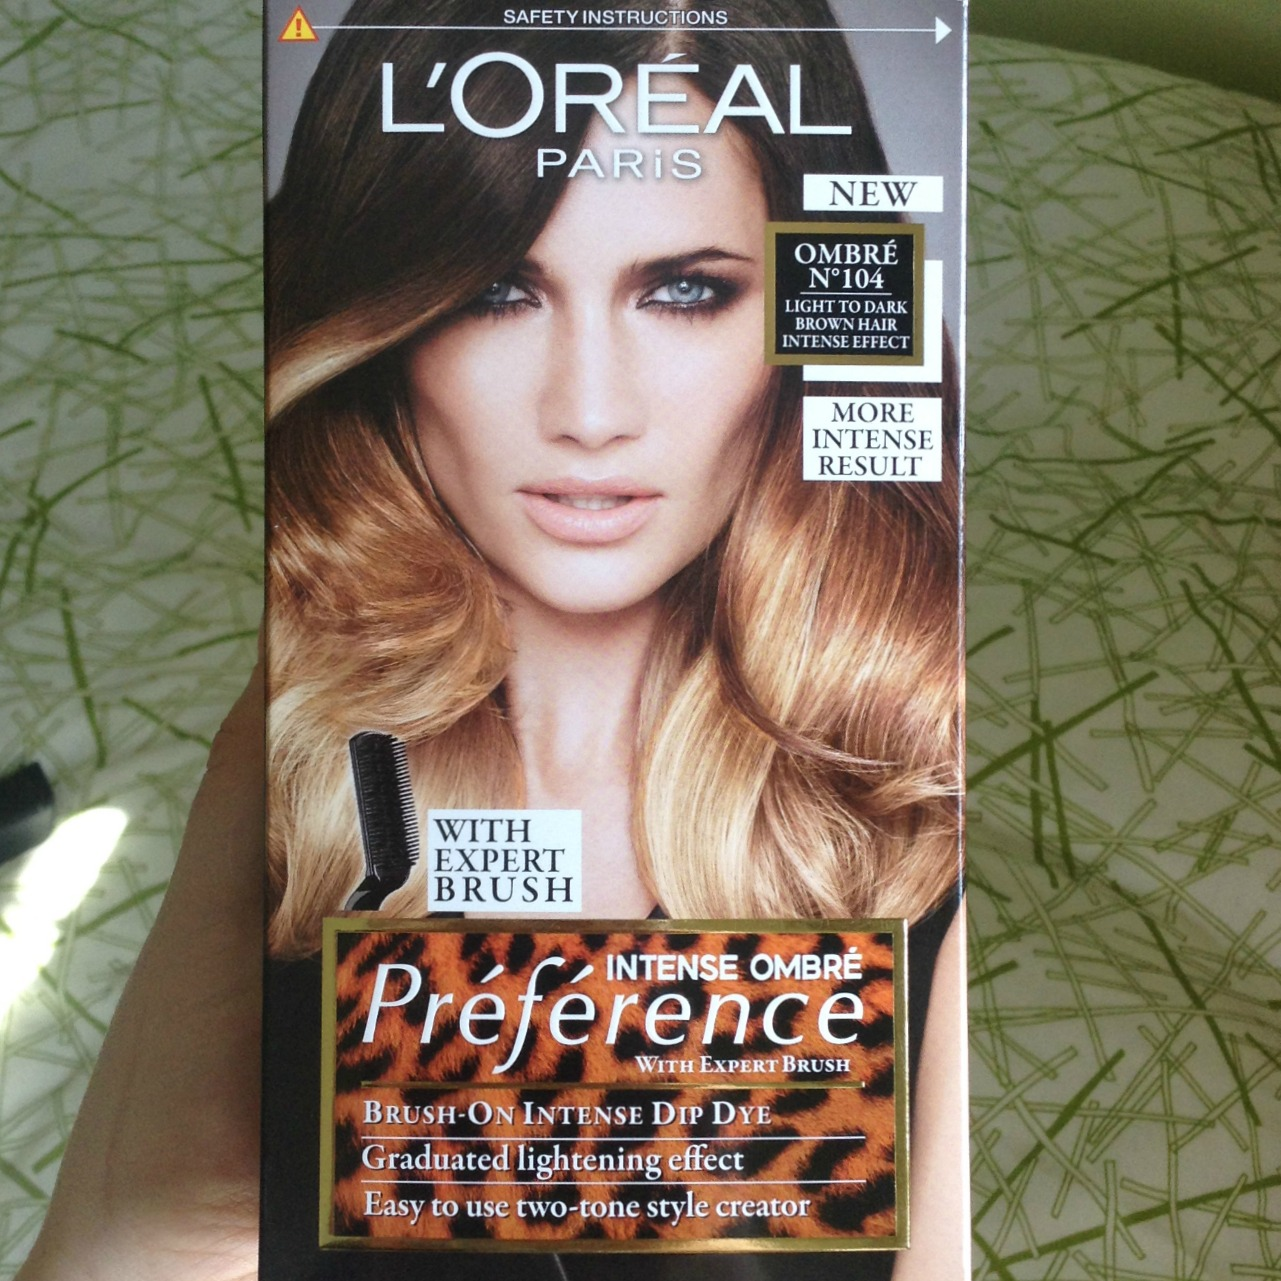 loreal ombre hair kit review loreal ombre hair kit review buy preference wild ombre. Black Bedroom Furniture Sets. Home Design Ideas